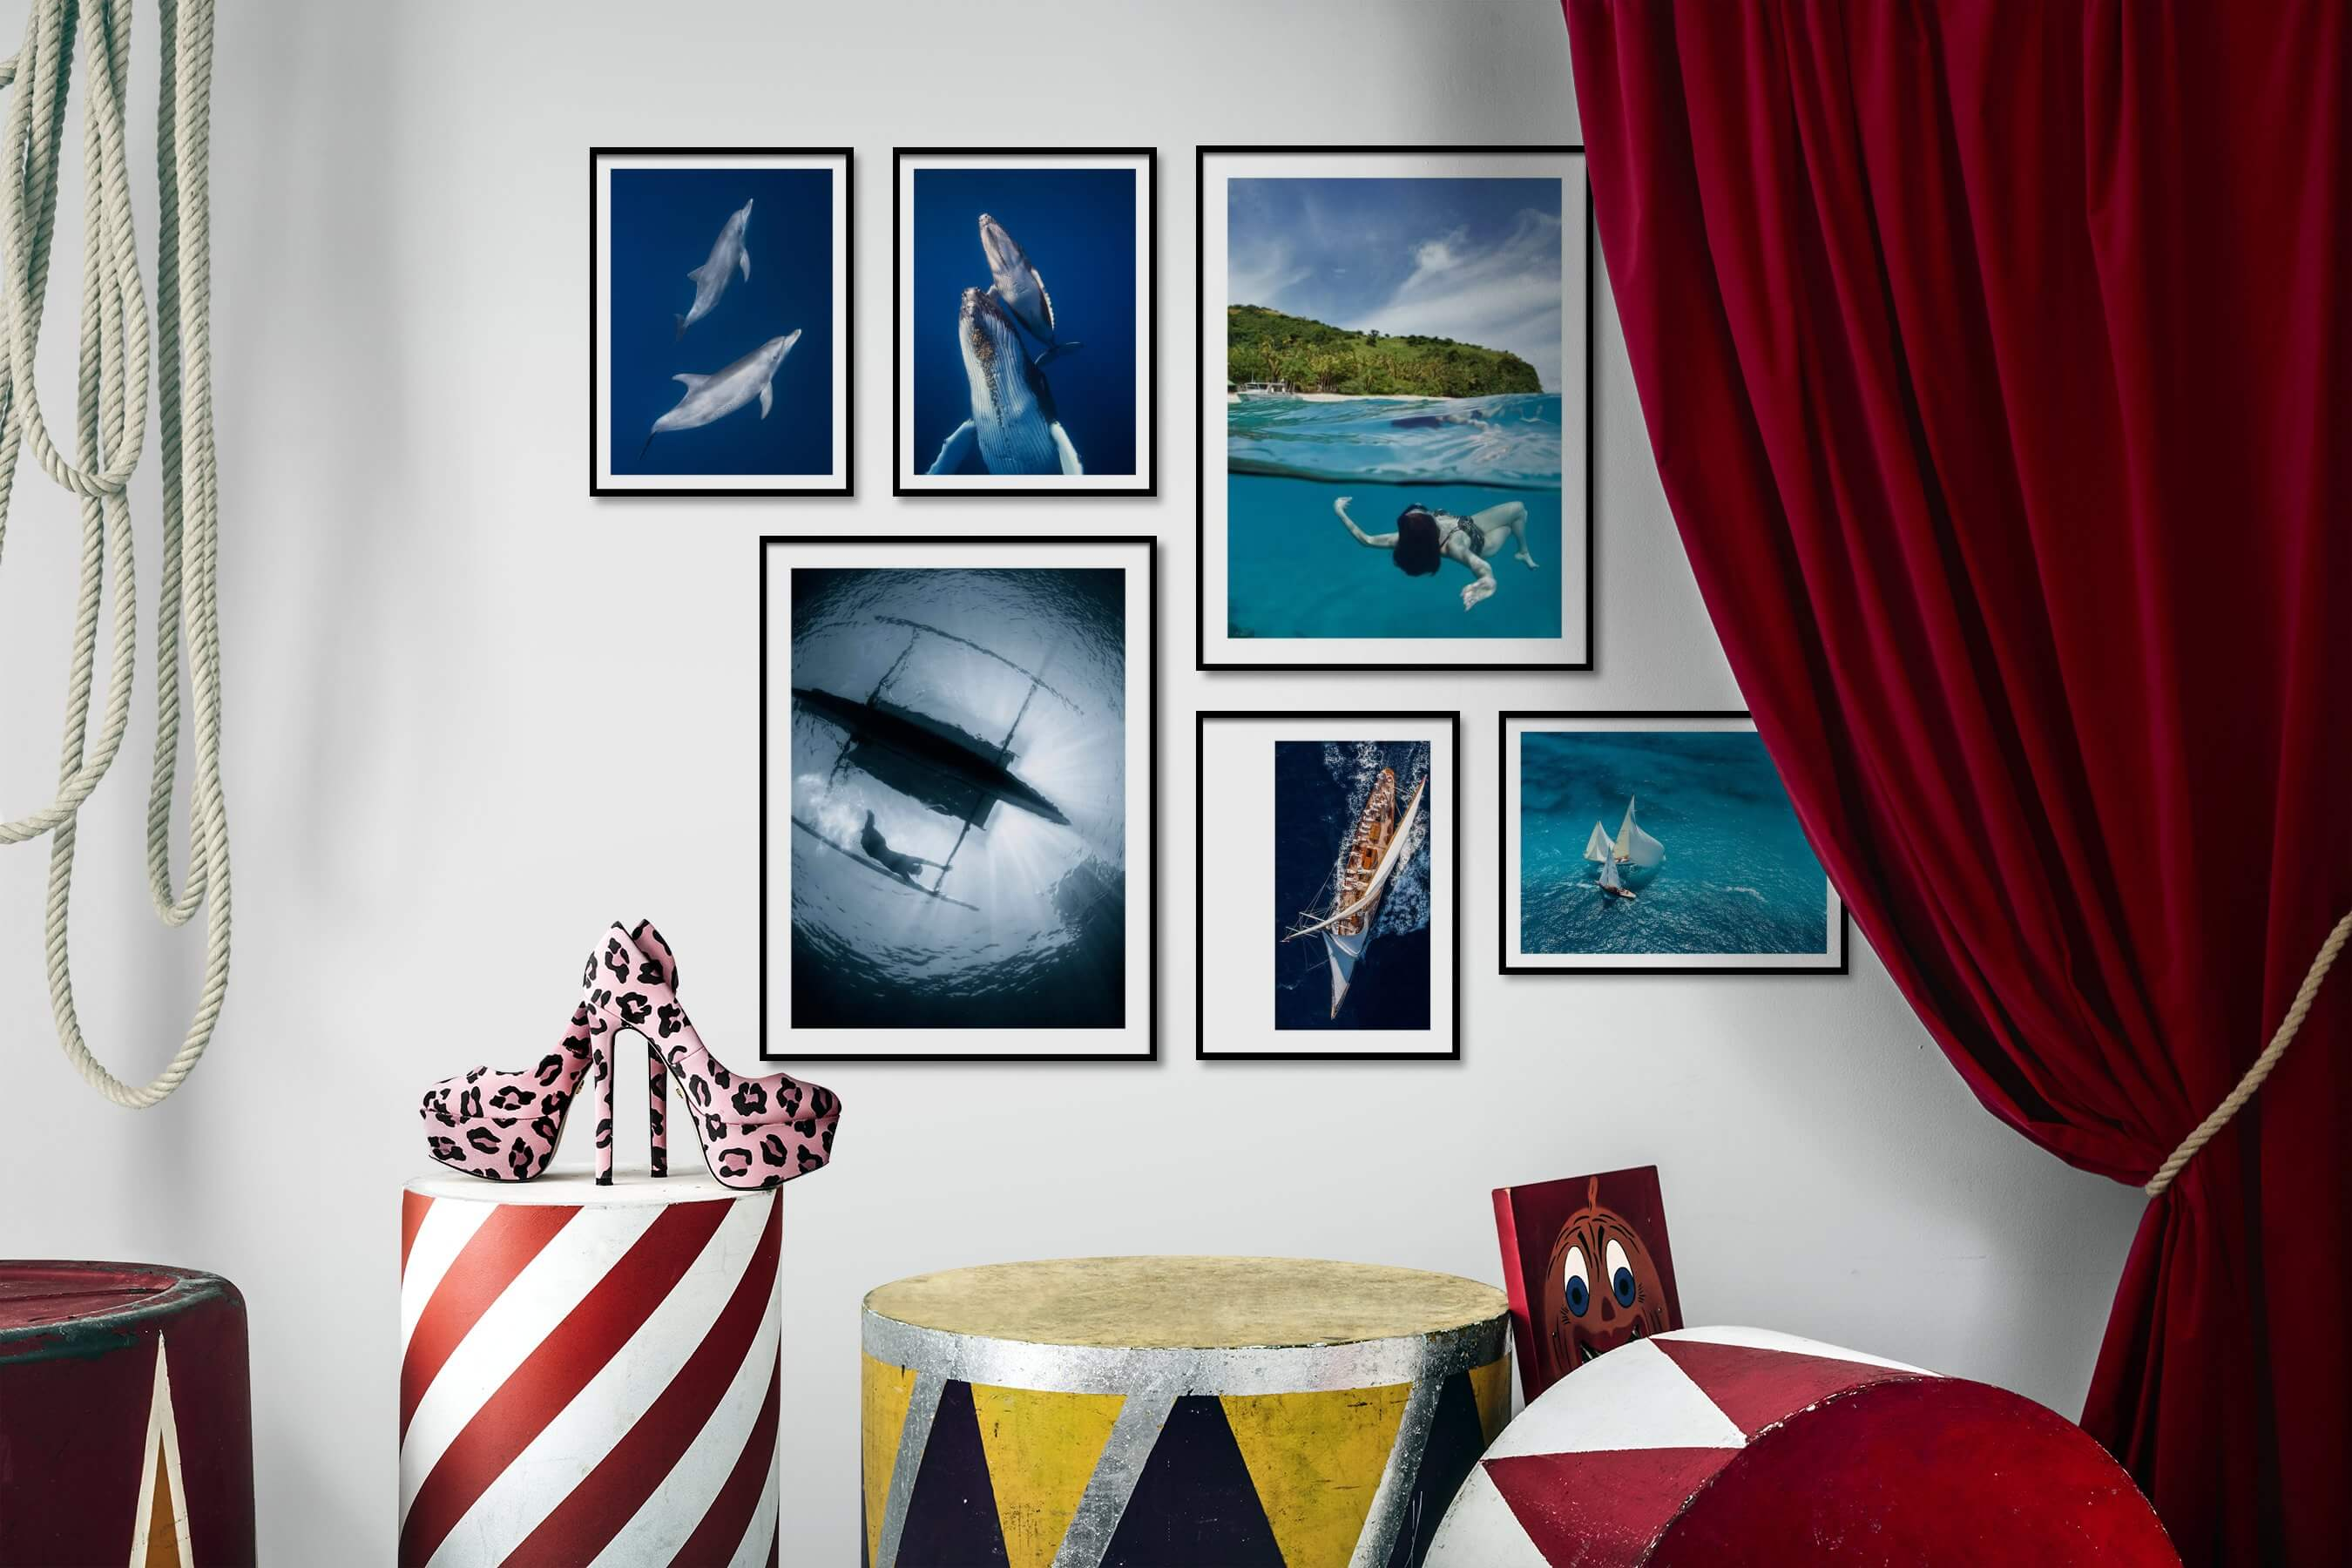 Gallery wall idea with six framed pictures arranged on a wall depicting For the Minimalist, Animals, Beach & Water, and For the Moderate